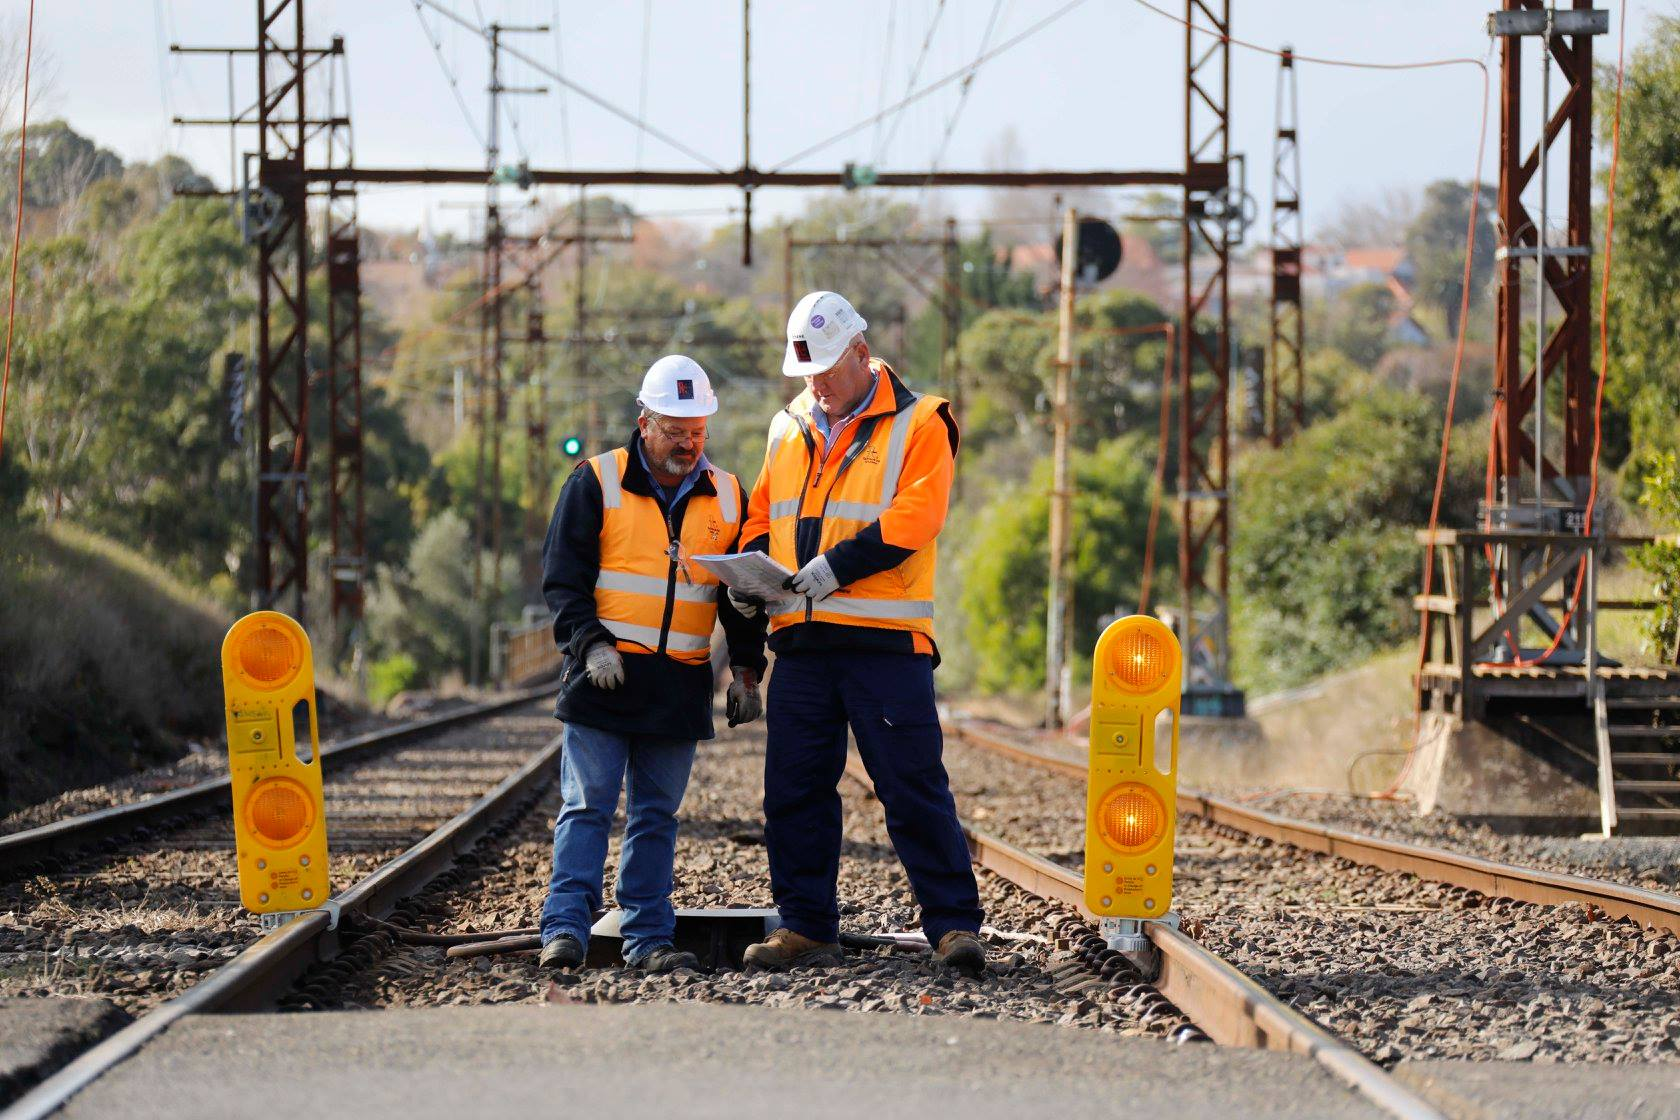 Rail SWS team at the forefront of Victoria's North East Program Alliance (NEPA).  Photo taken near Grange rd., Alphington.